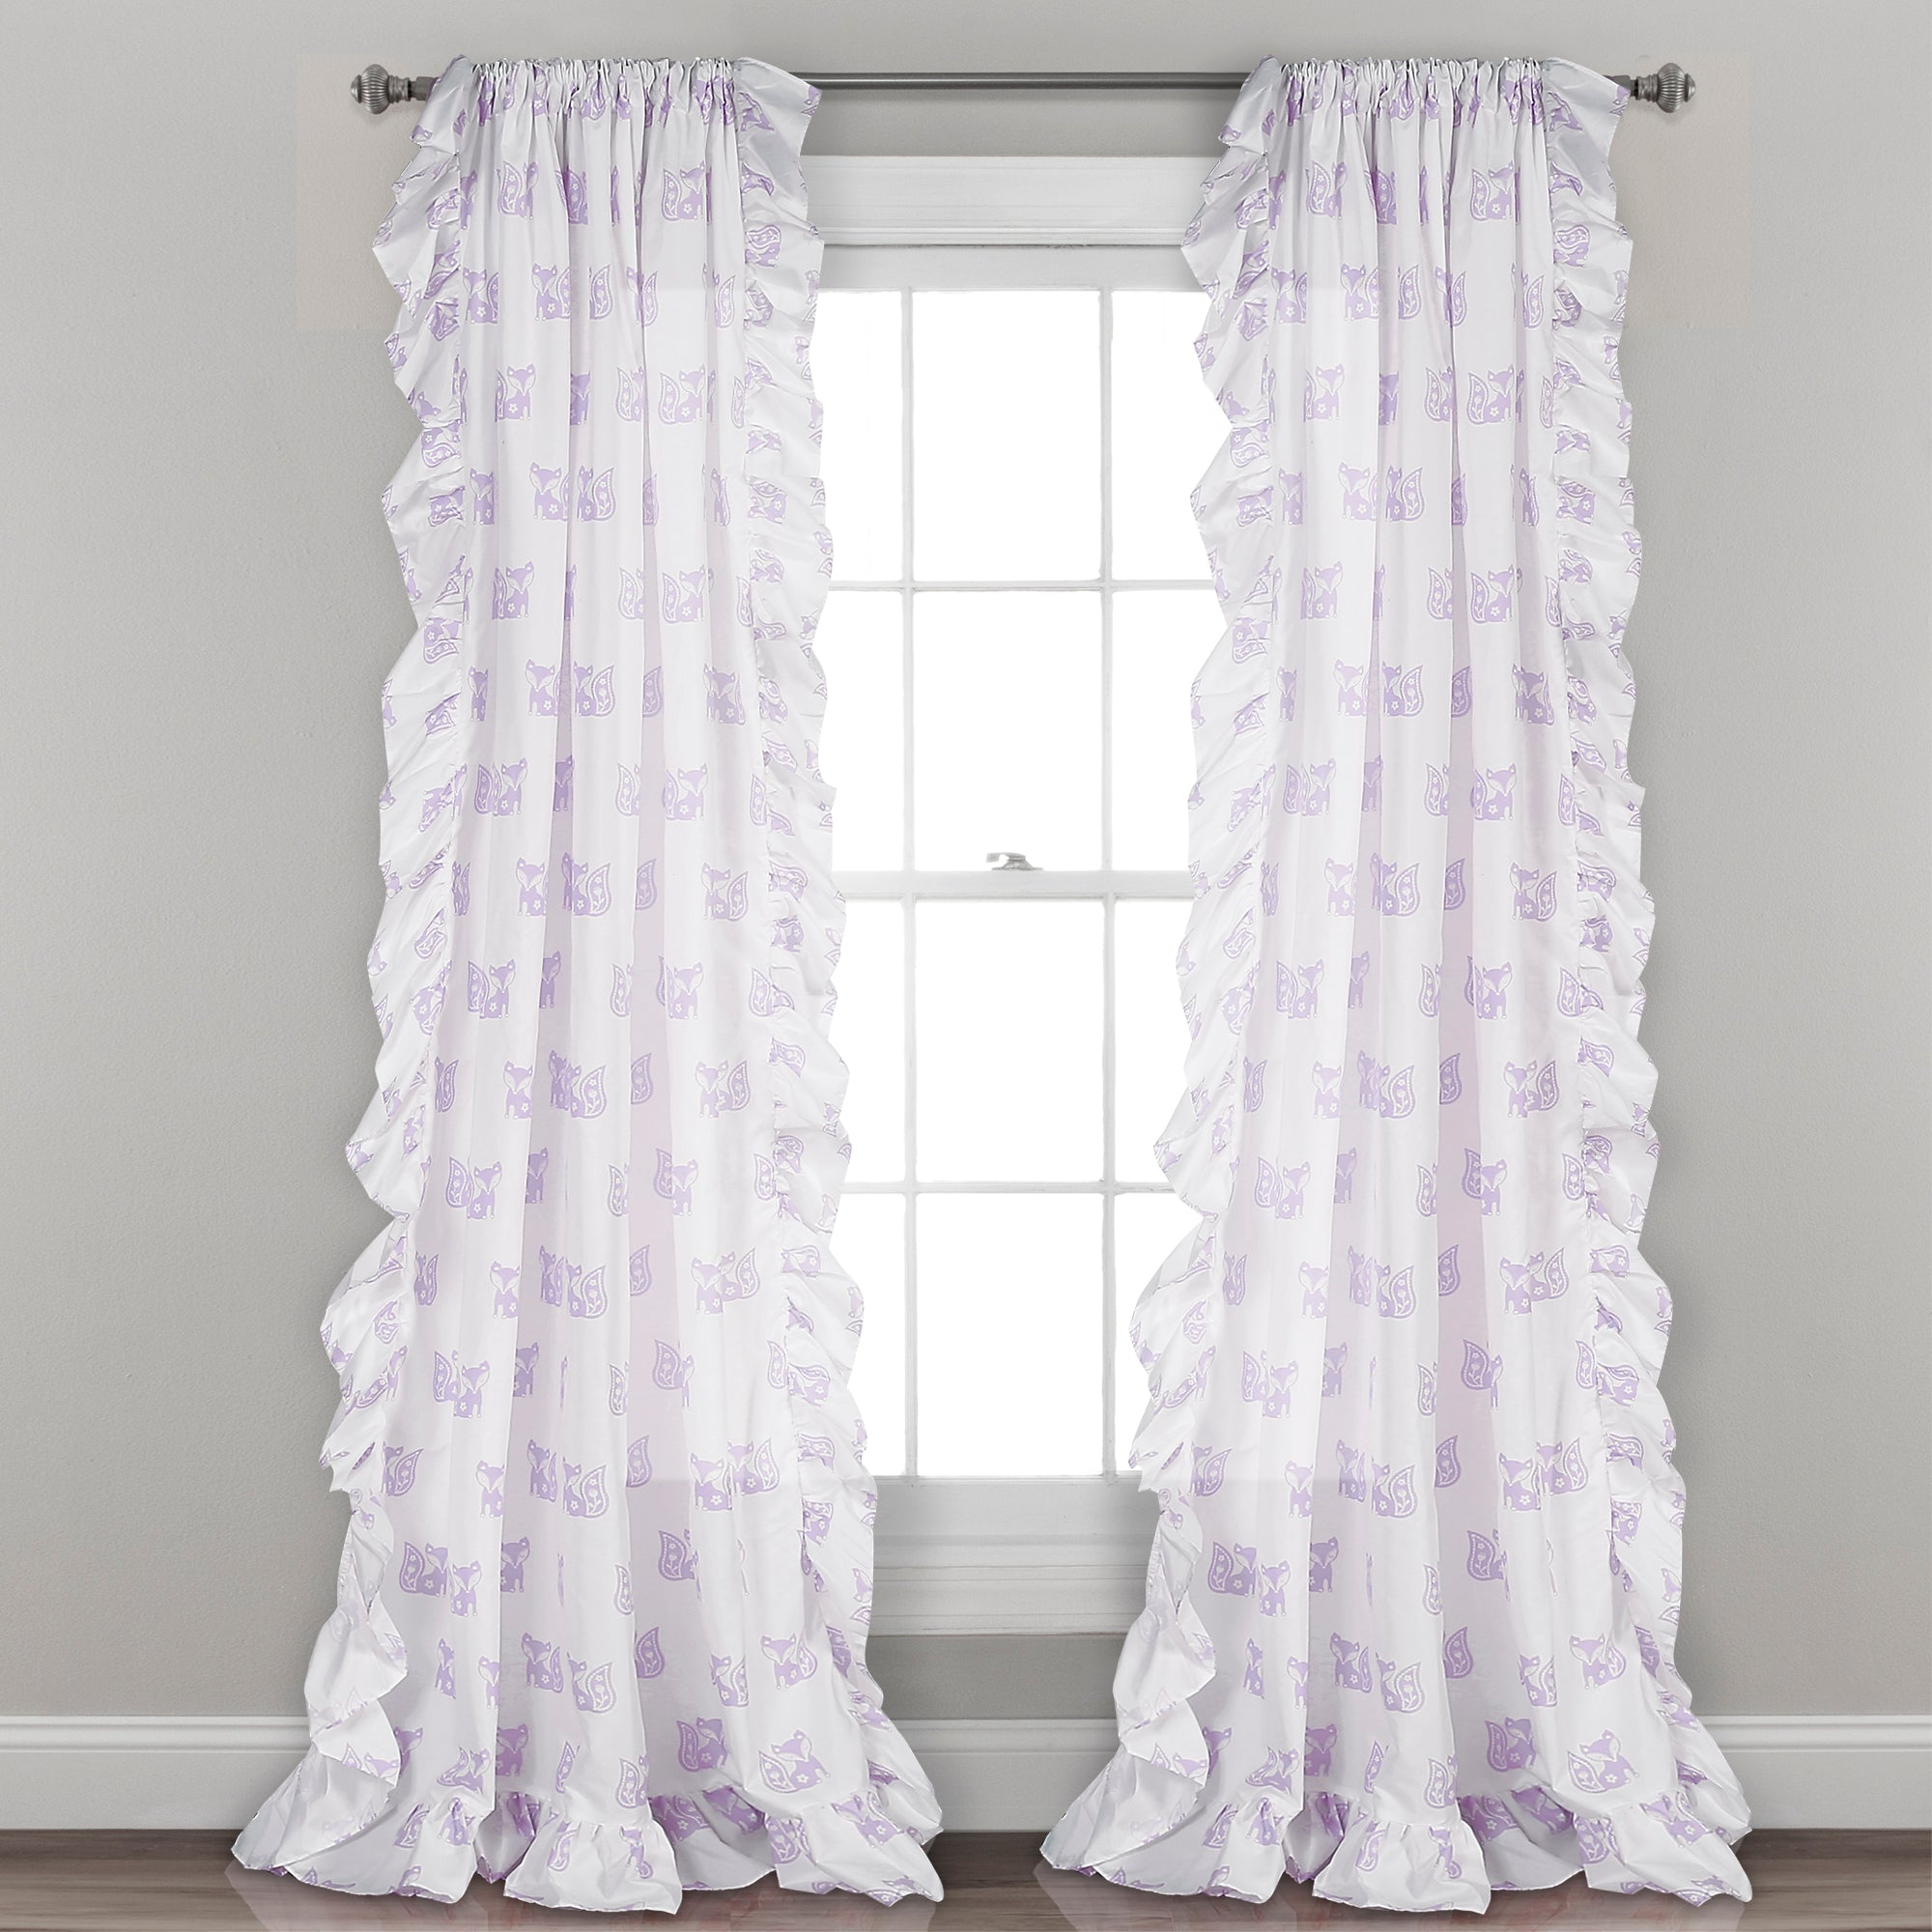 Ruffle Fox Window Curtain Panel Set